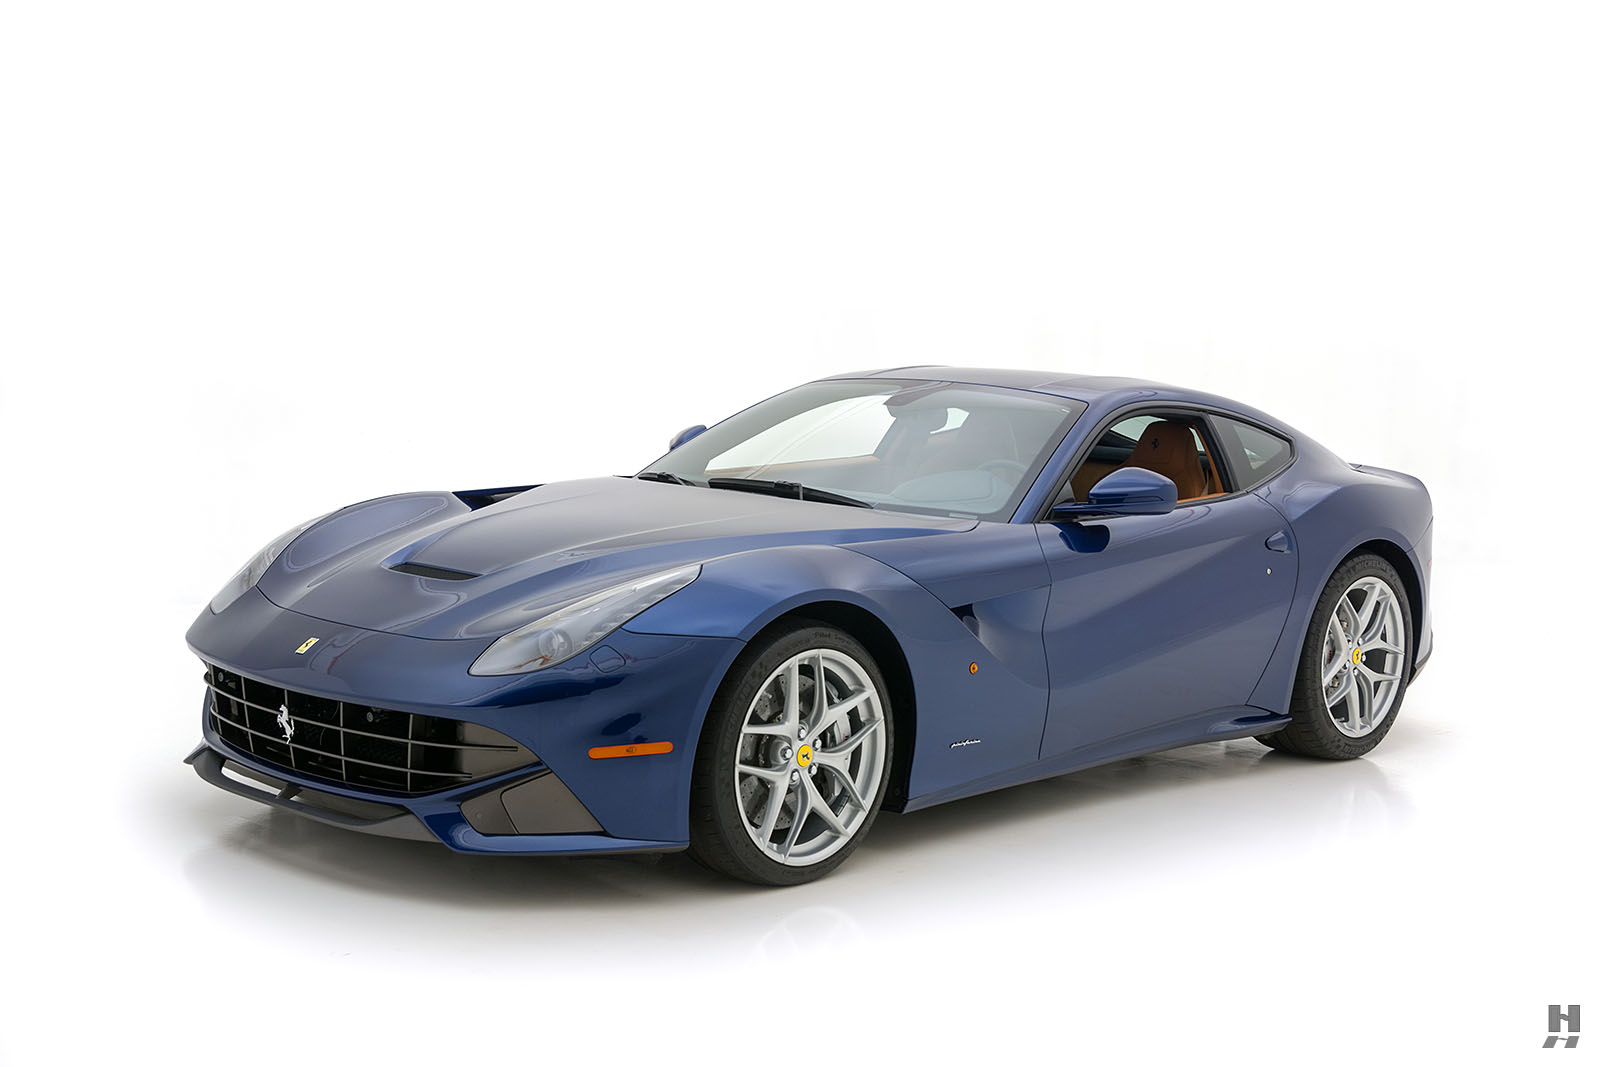 2015 Ferrari F12 Berlinetta Hyman Ltd